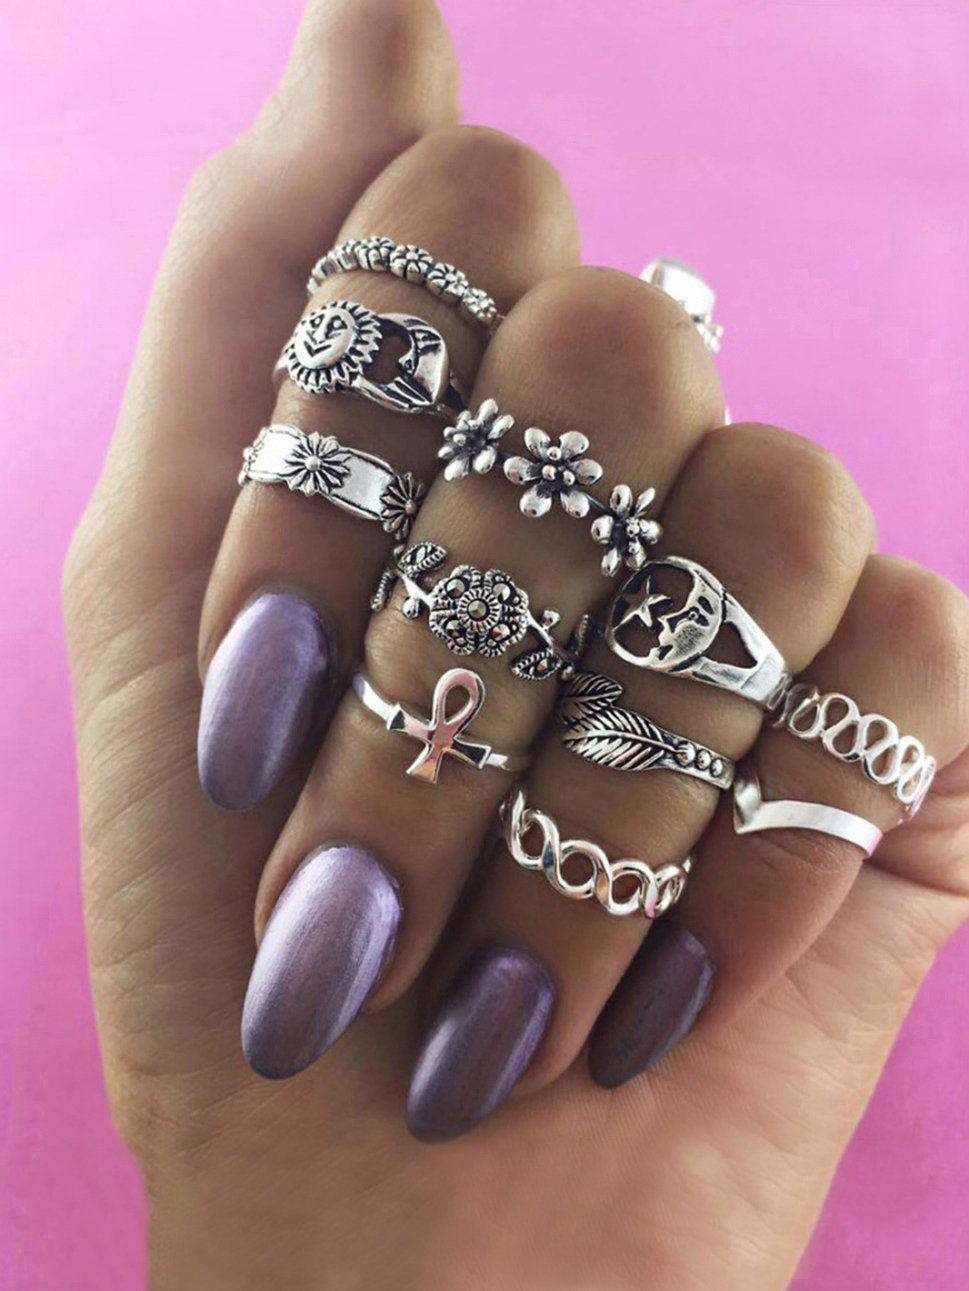 Rings Accessories - 11pcs Vintage Carved Rings Accessories -   jetcube